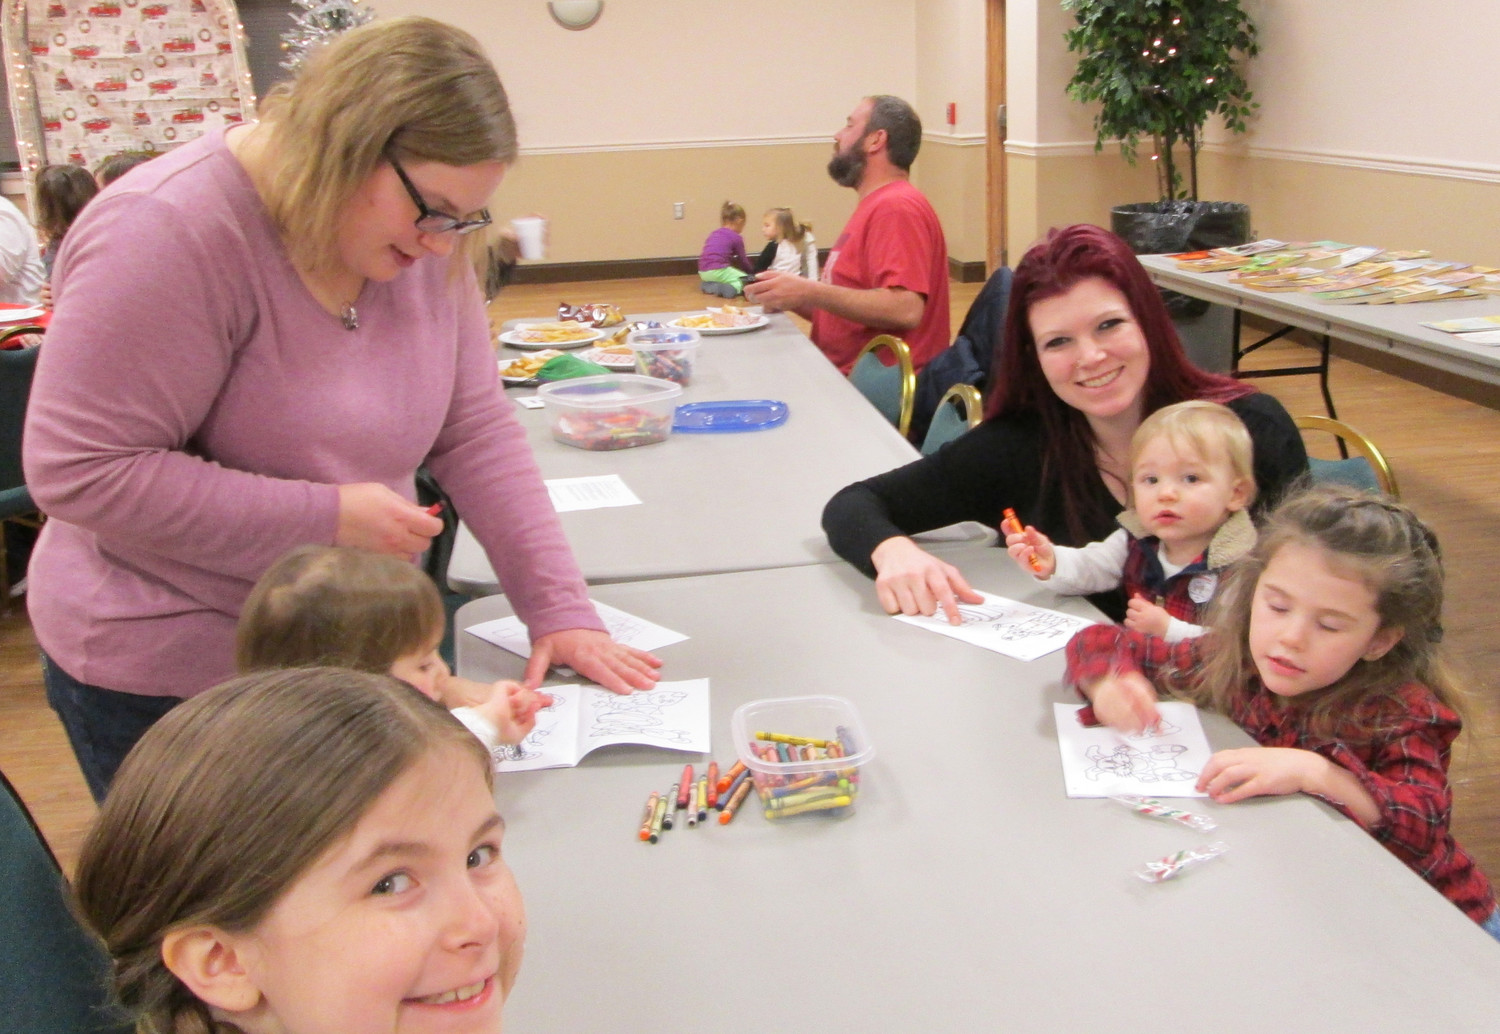 Children enjoy a project at the Chambers Hill Fire Company Santa party on Dec. 16.